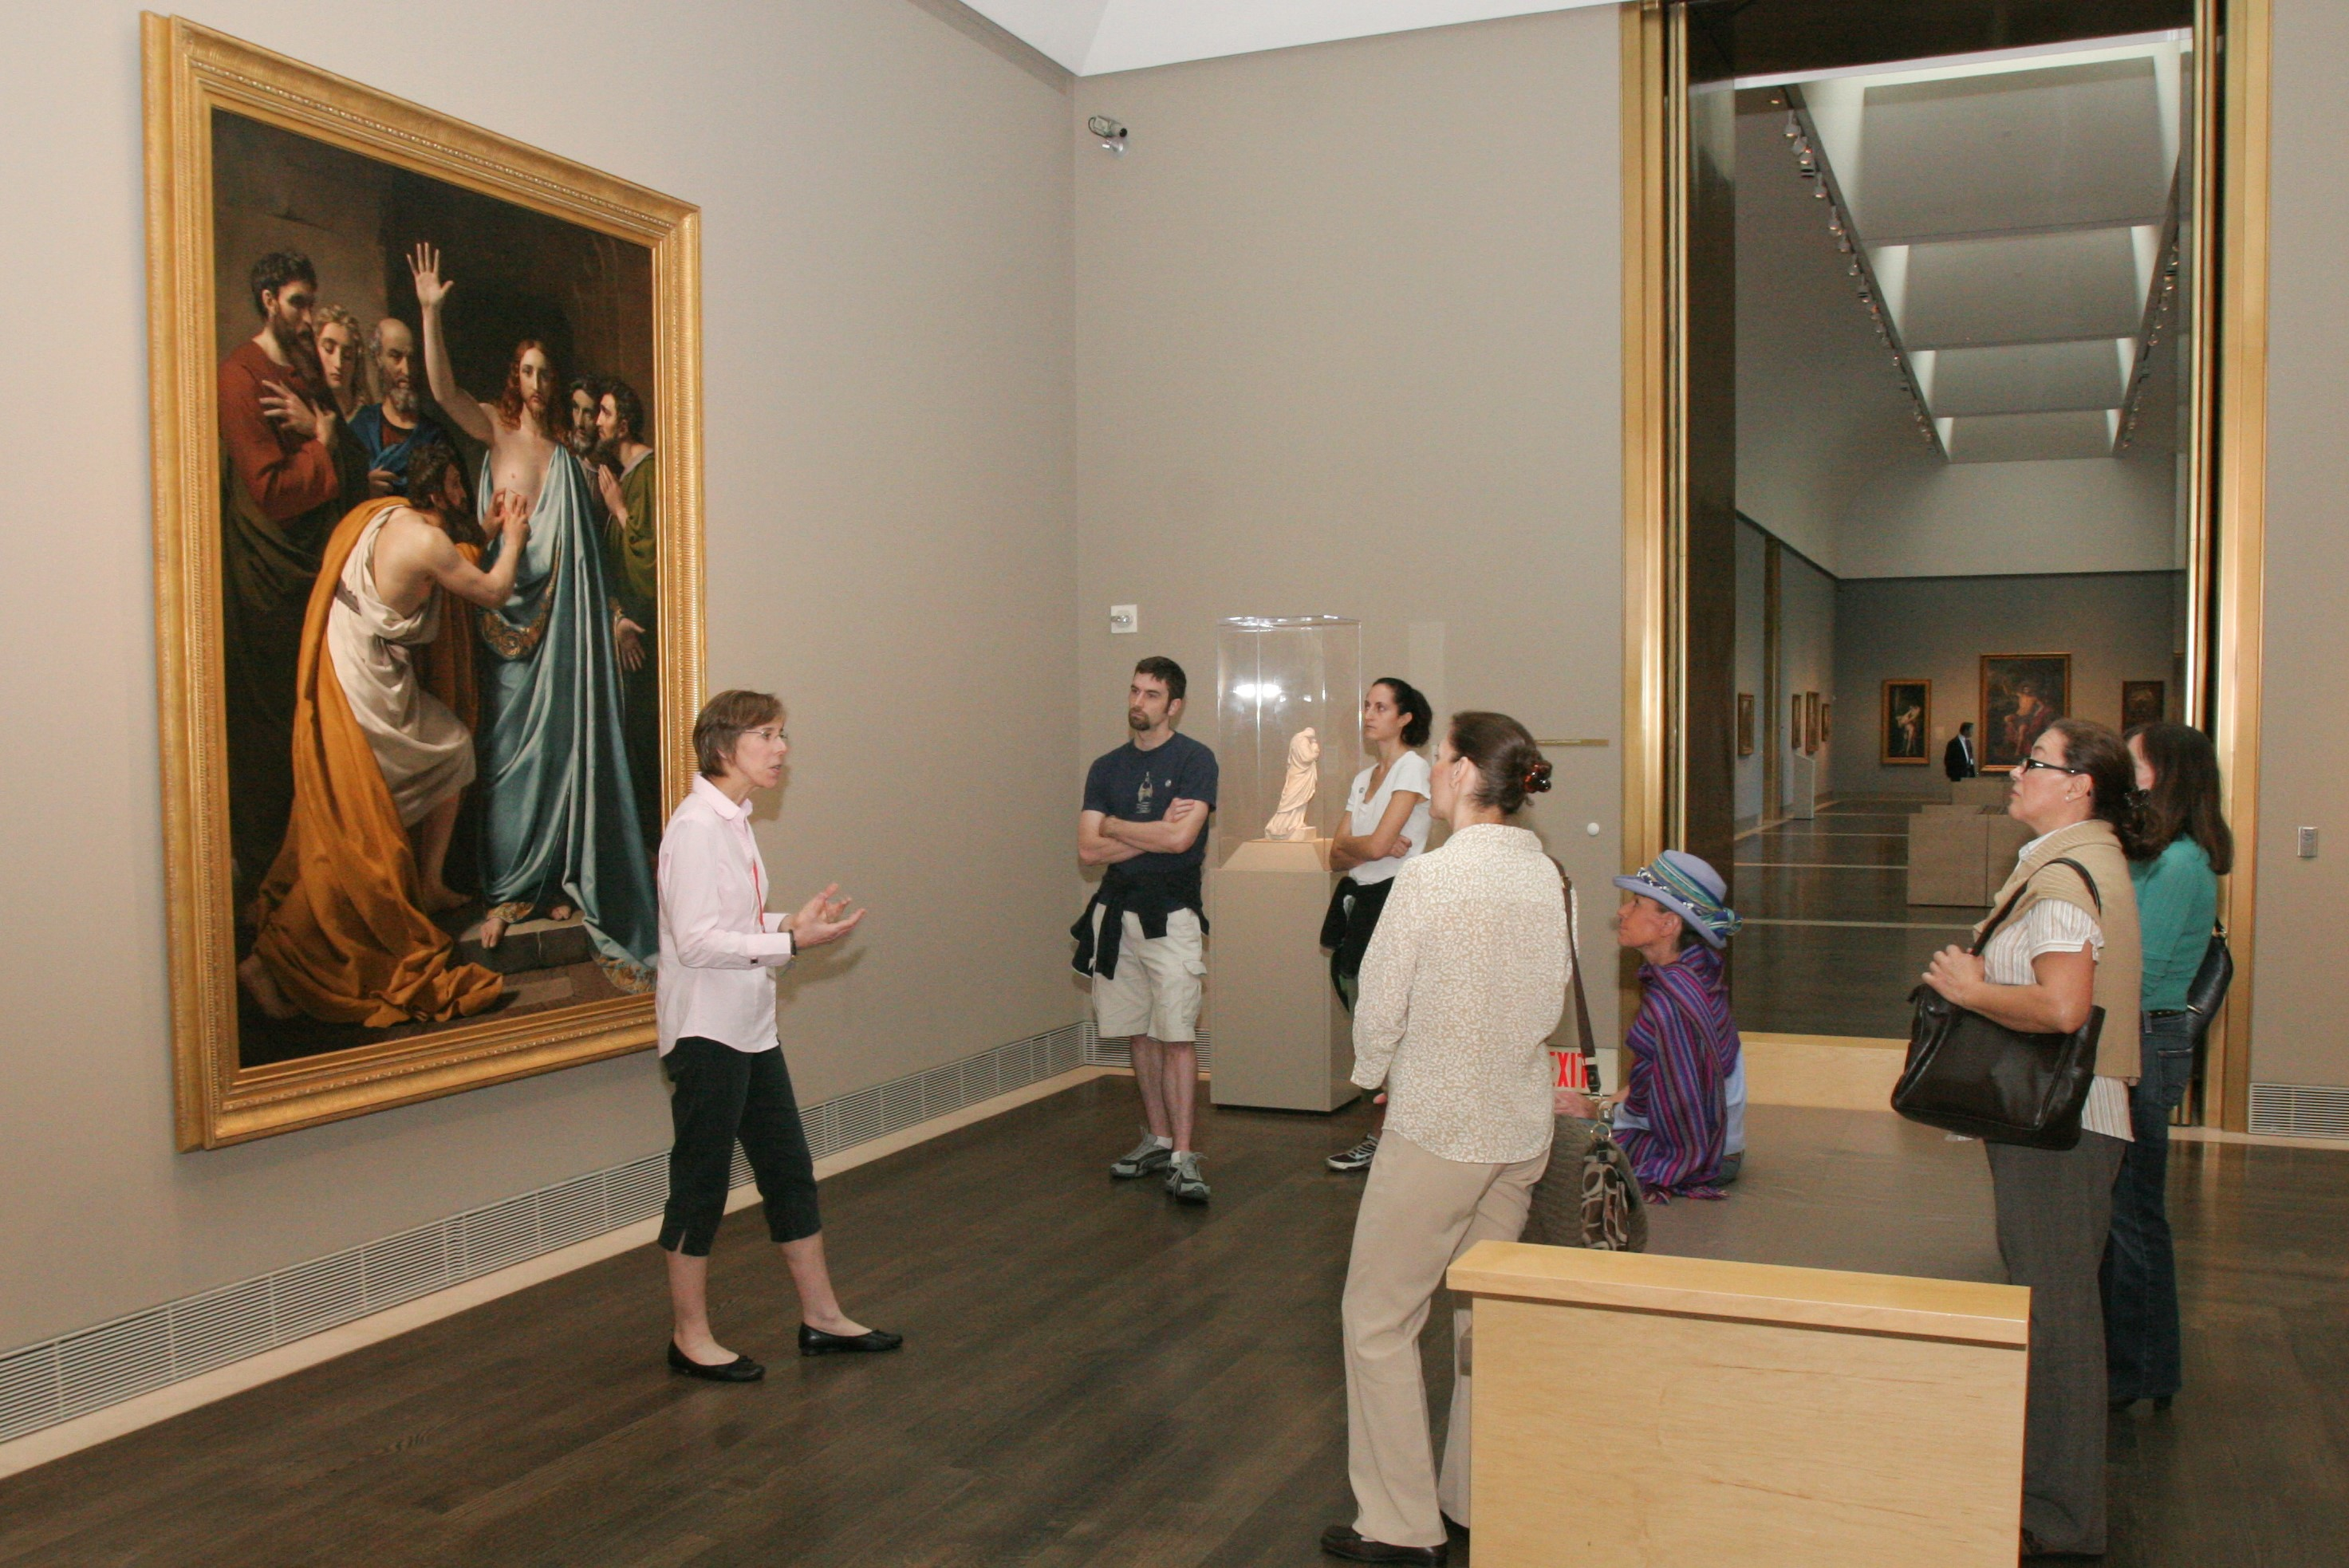 Visiting The MFAH For FREE The Museum Of Fine Arts Houston - Museum bank of america discounts